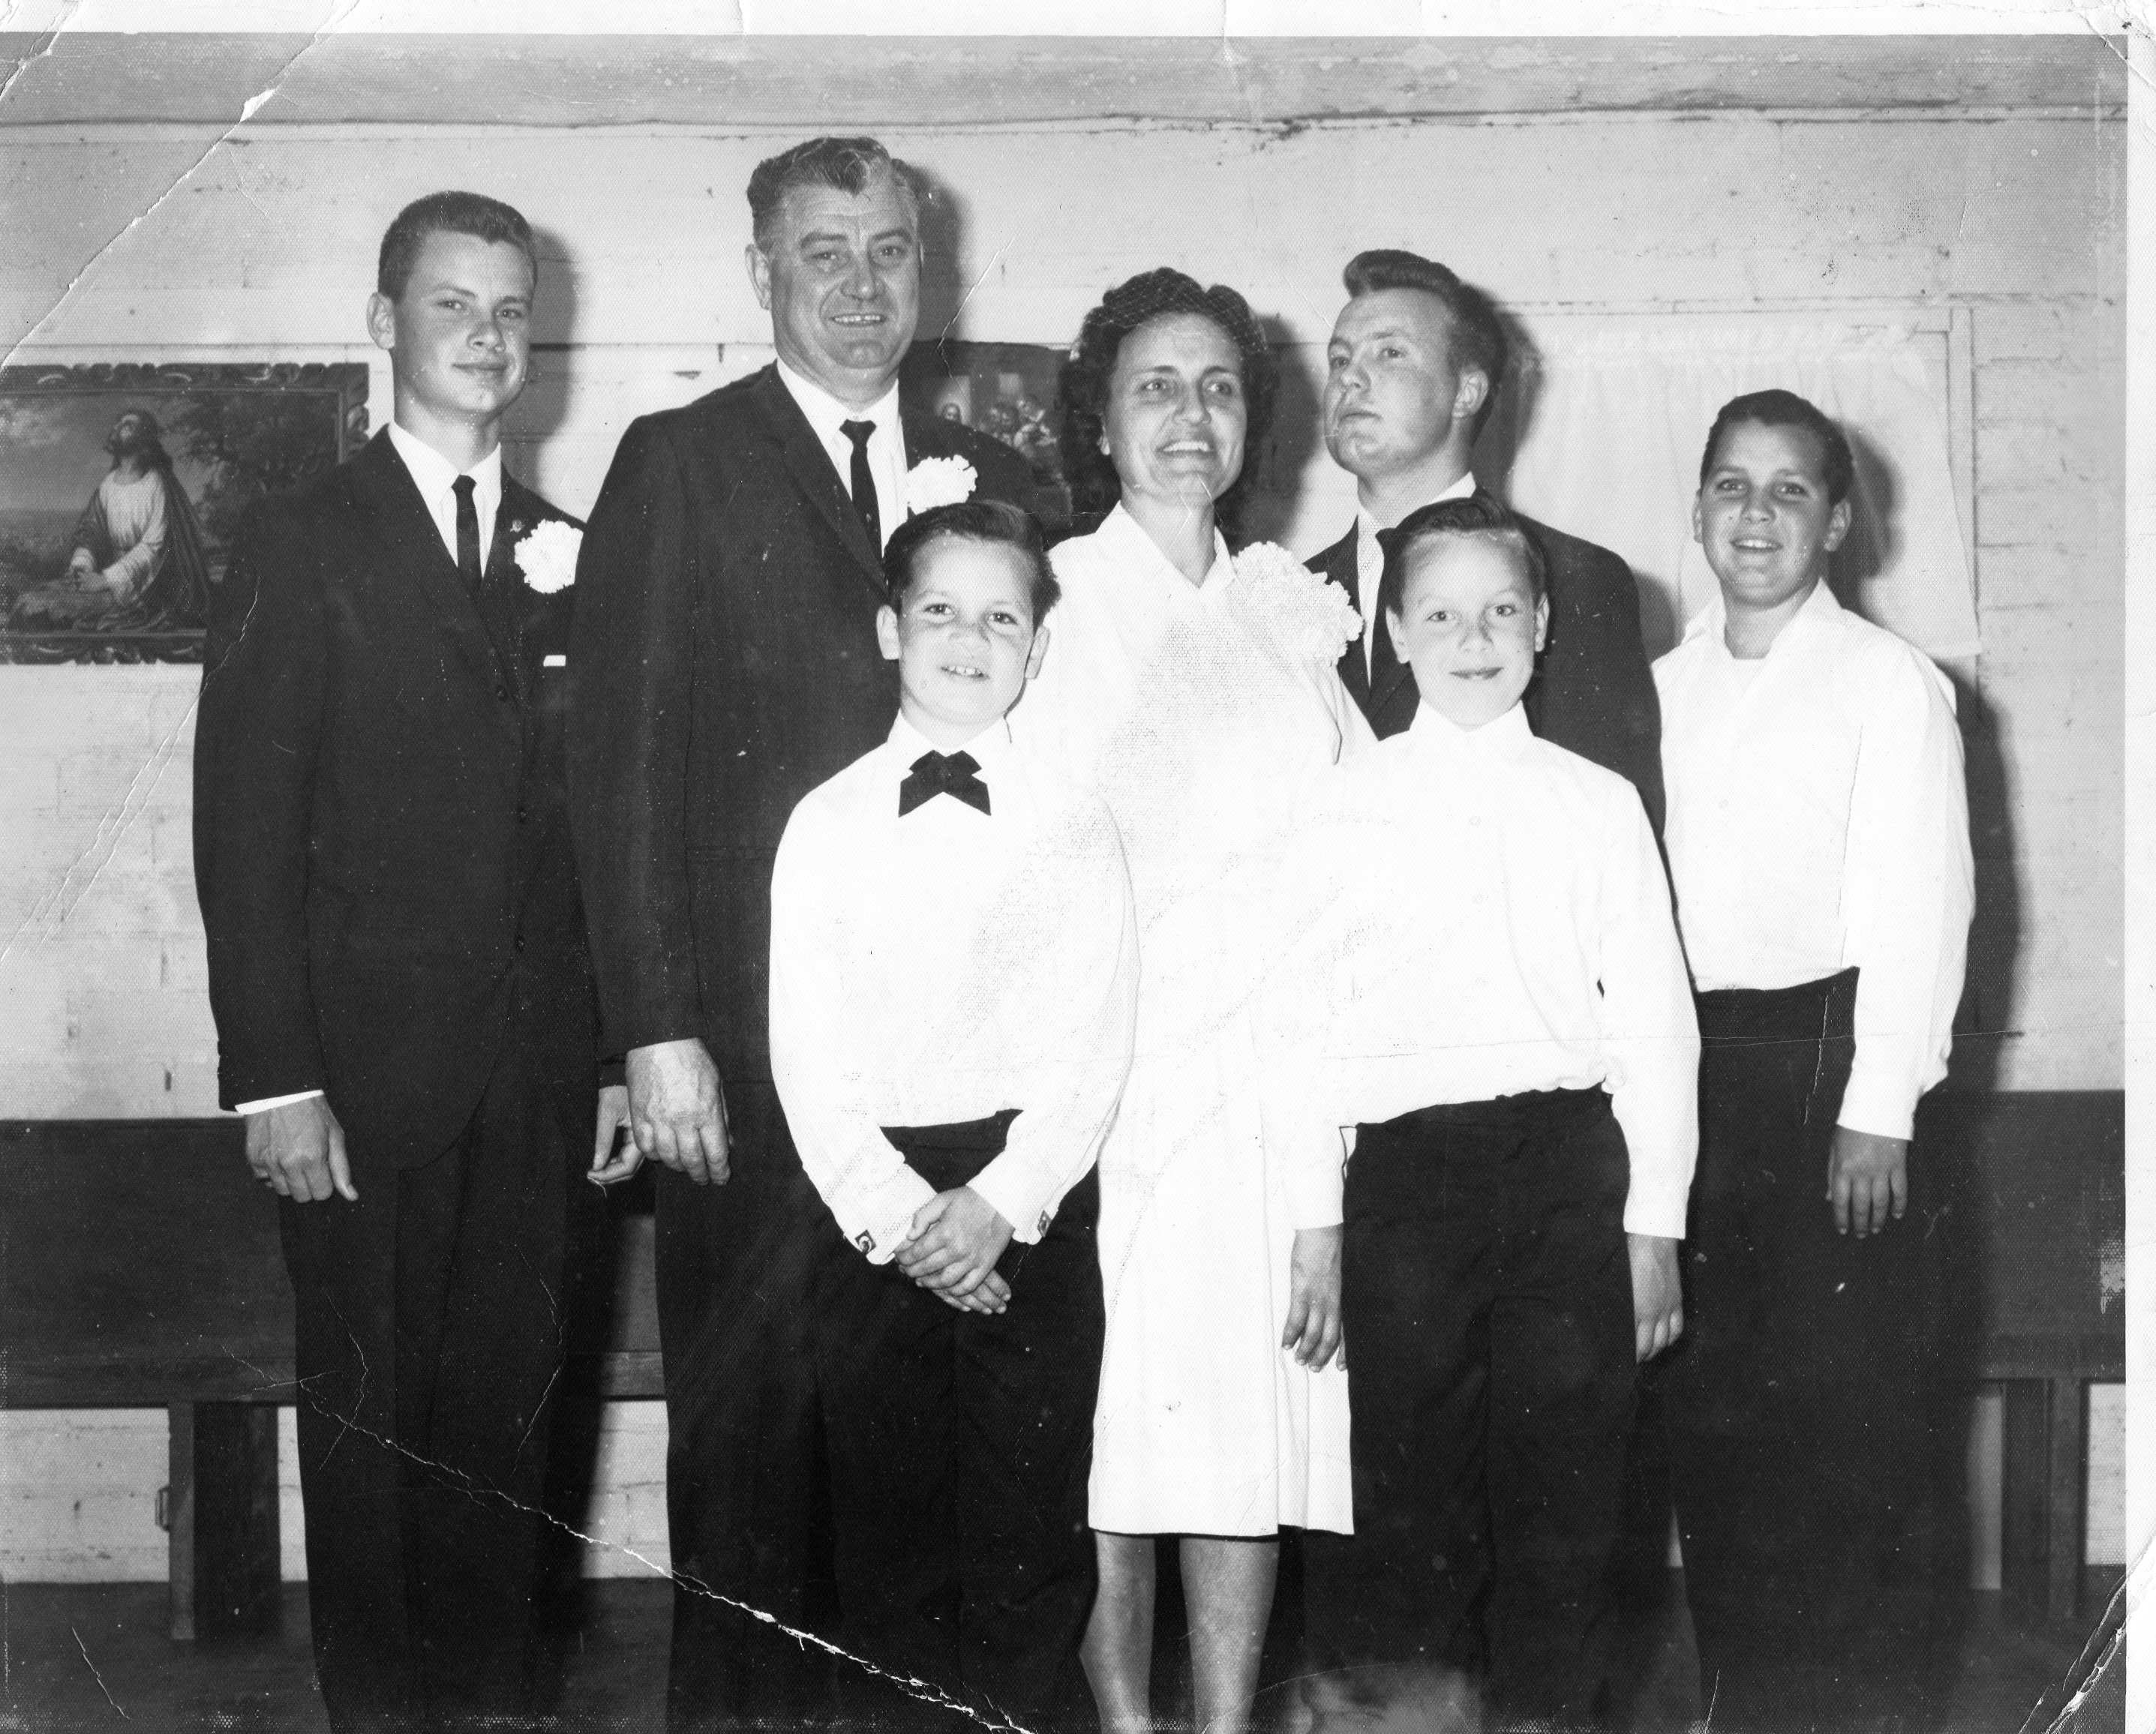 Russ Taff's mother and father & family